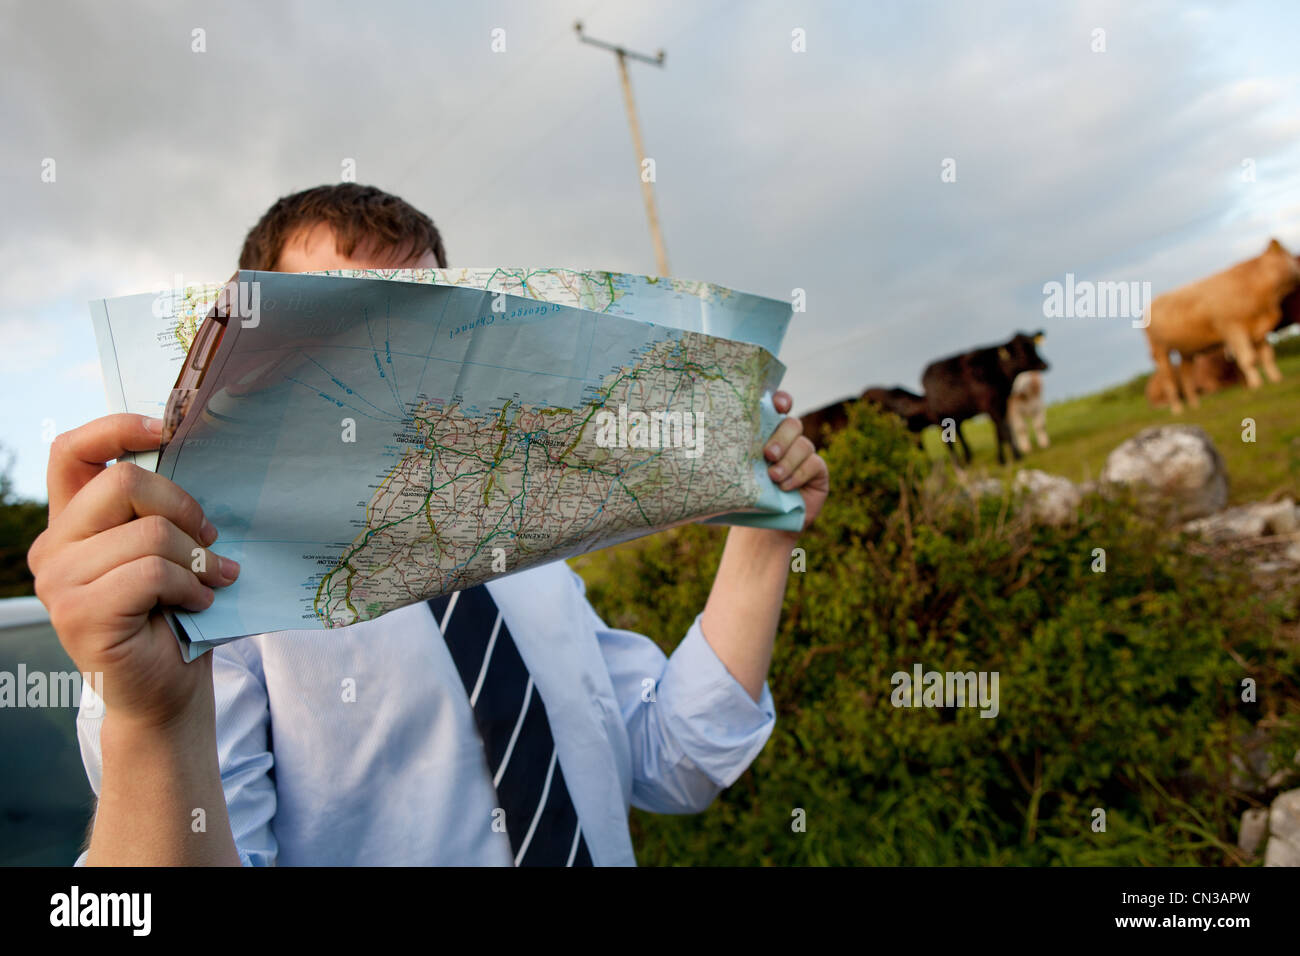 Businessman reading map in countryside - Stock Image